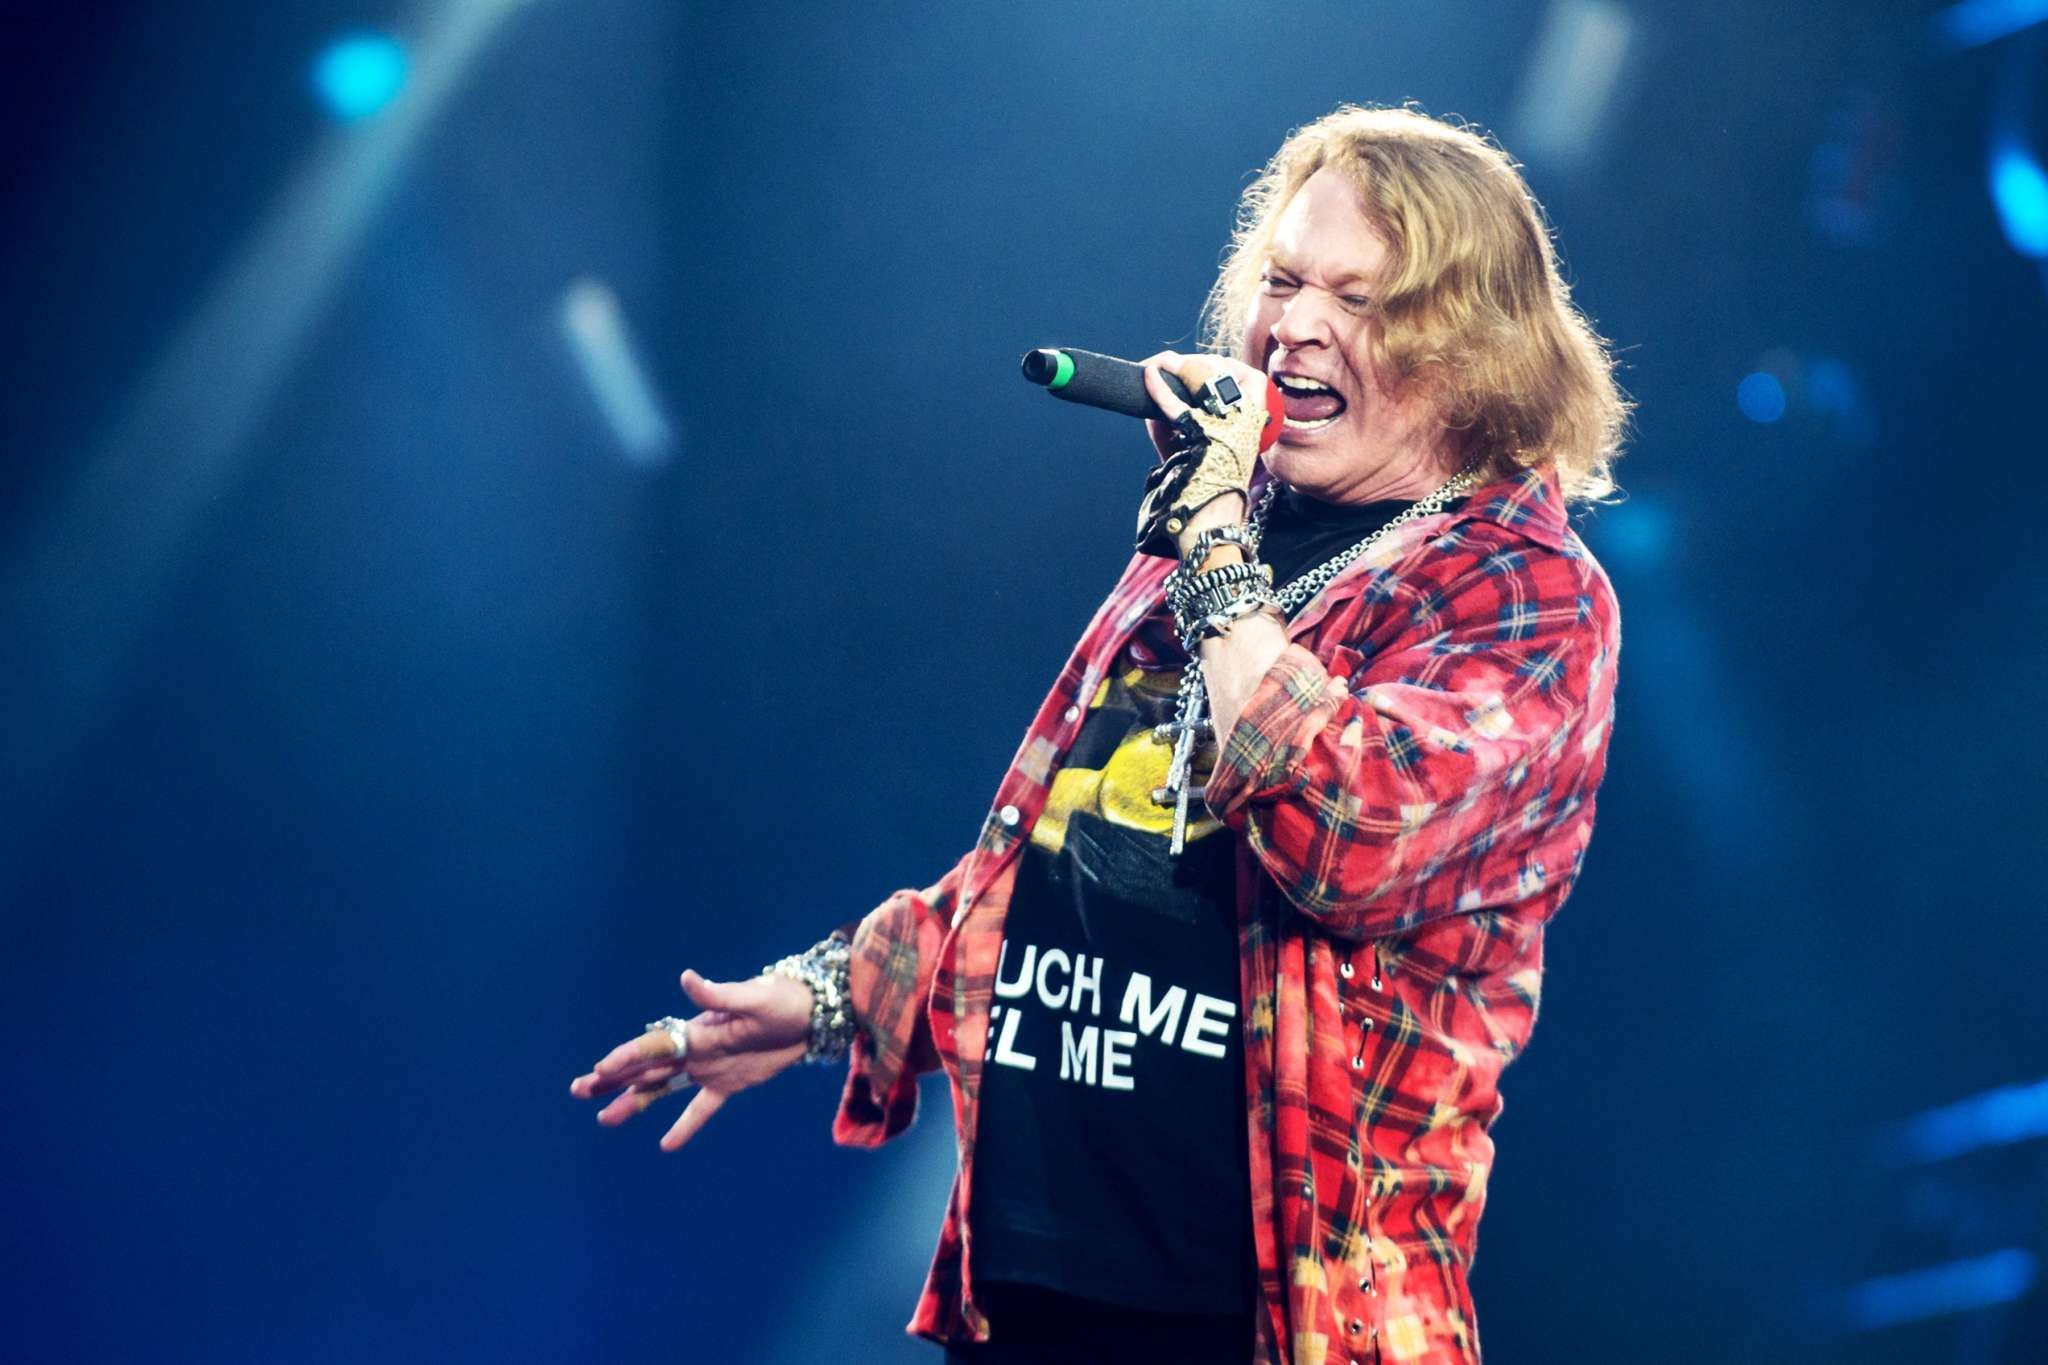 """axl-rose-slams-coward-surgeon-general-jerome-adams-after-he-refuses-to-tell-people-to-avoid-large-4th-of-july-gatherings-amid-the-pandemic"""